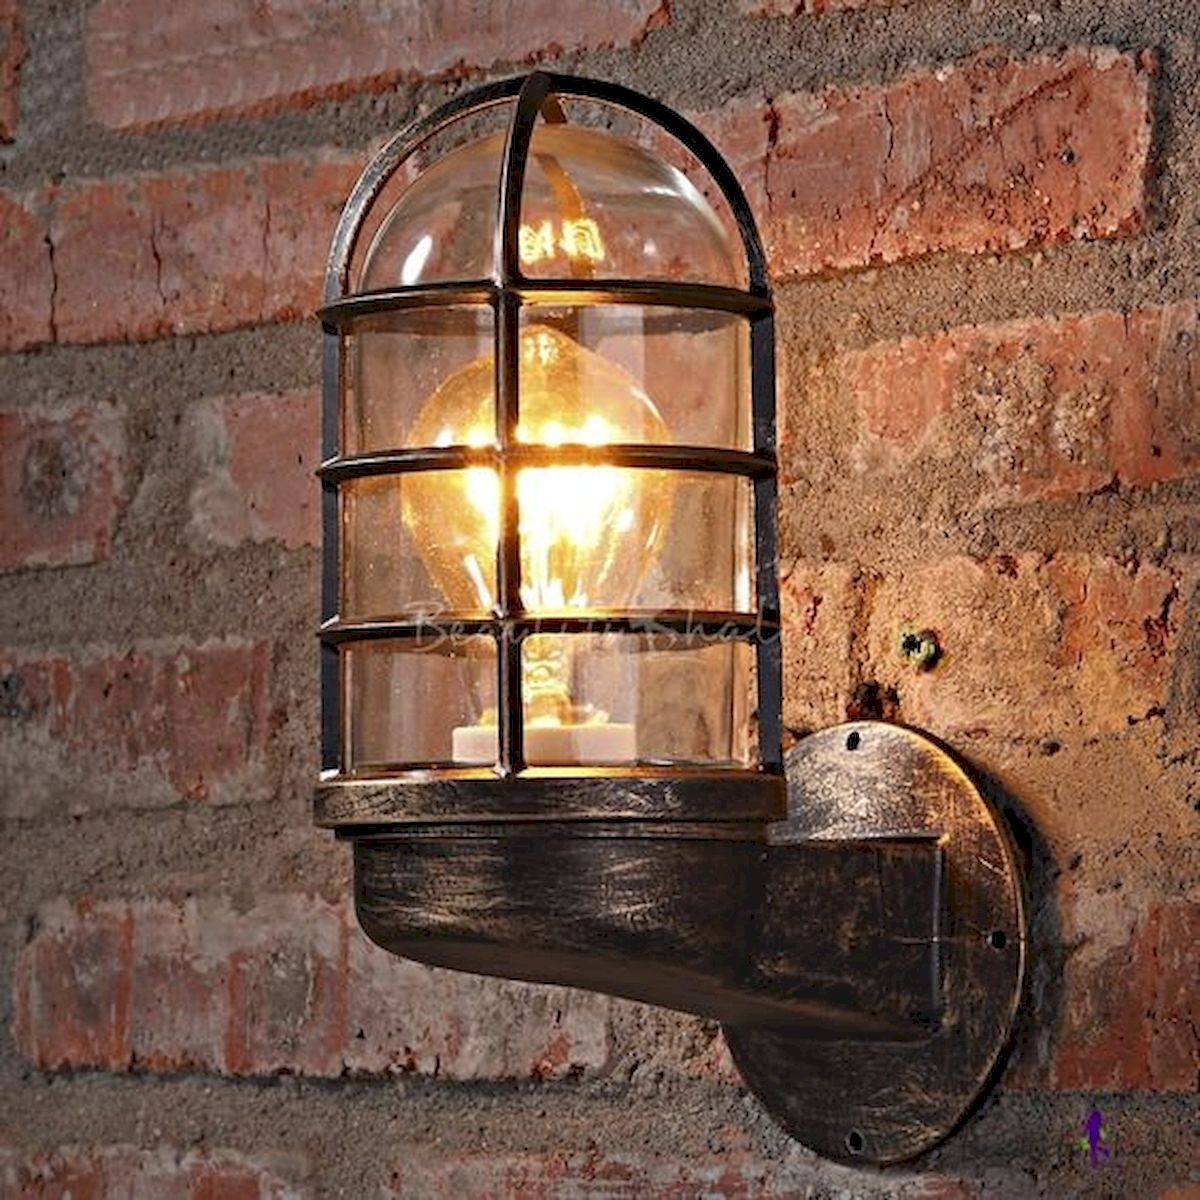 40 Fantastic DIY Lamps Decoration Ideas for Your Home (30)